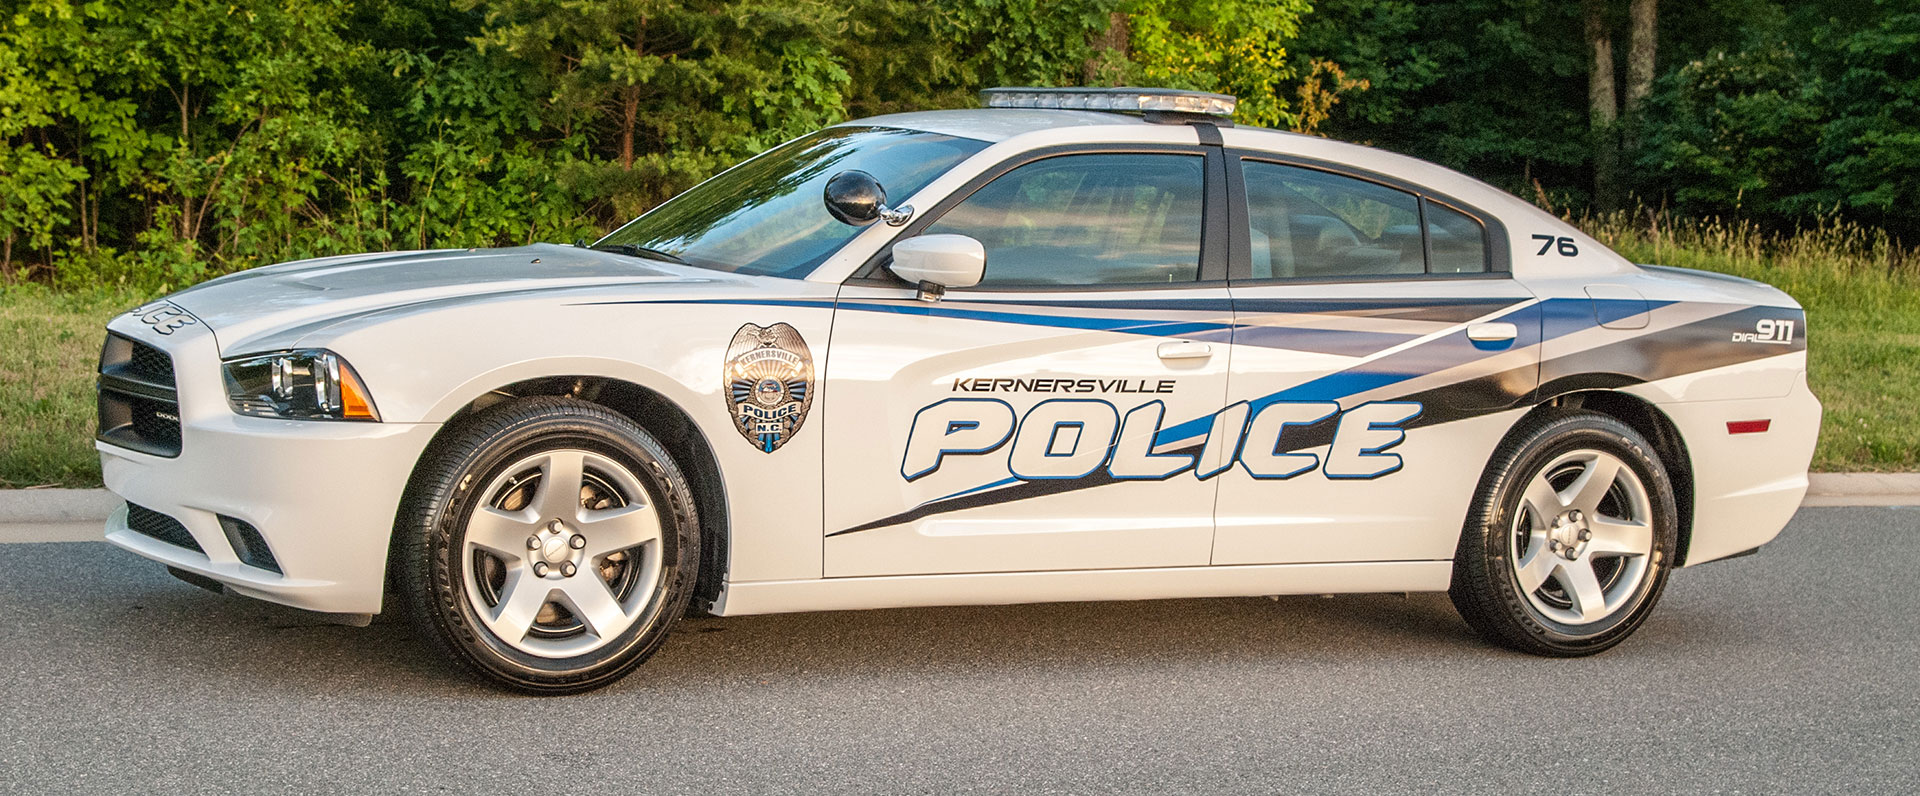 Kernersville Police Department – A higher level of service